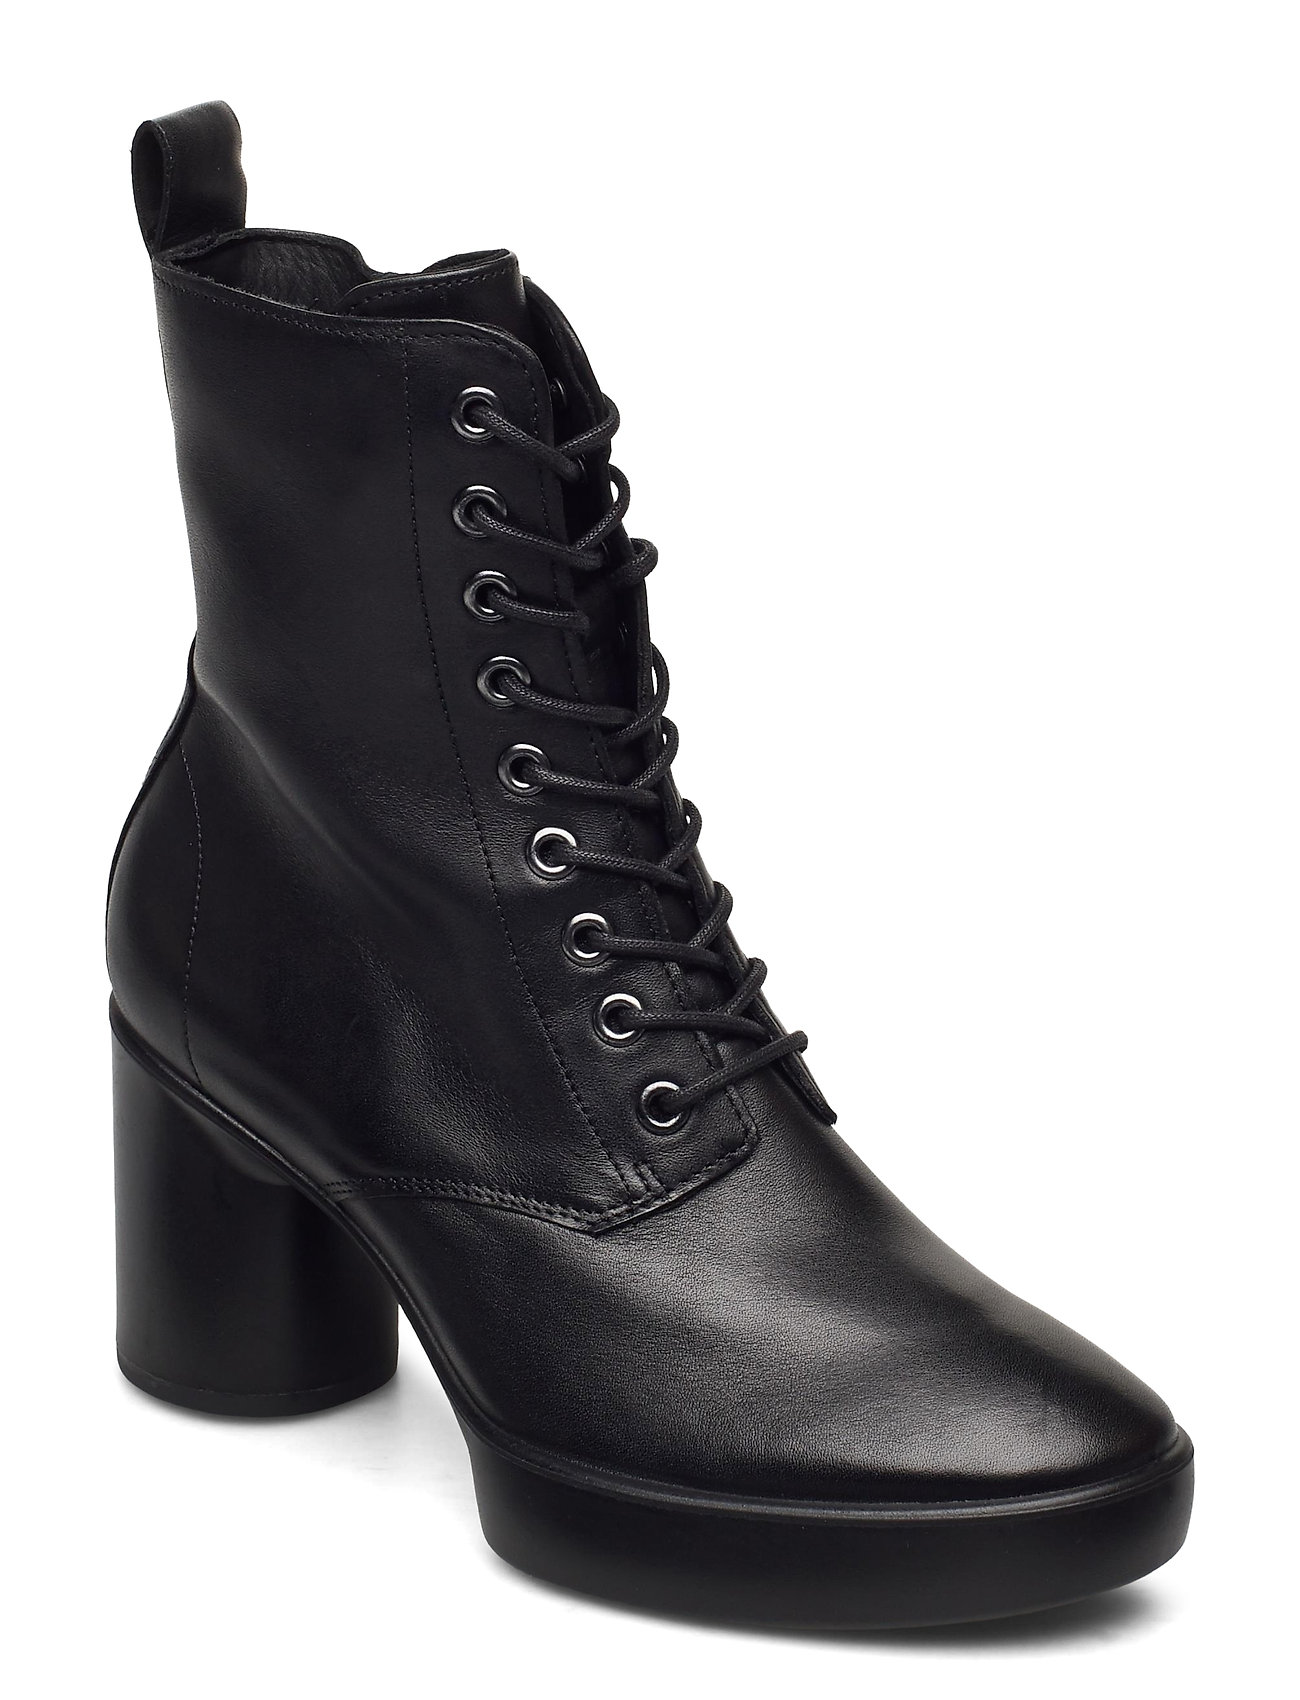 Image of Shape Sculpted Motion 55 Shoes Boots Ankle Boots Ankle Boot - Heel Sort ECCO (3453532069)